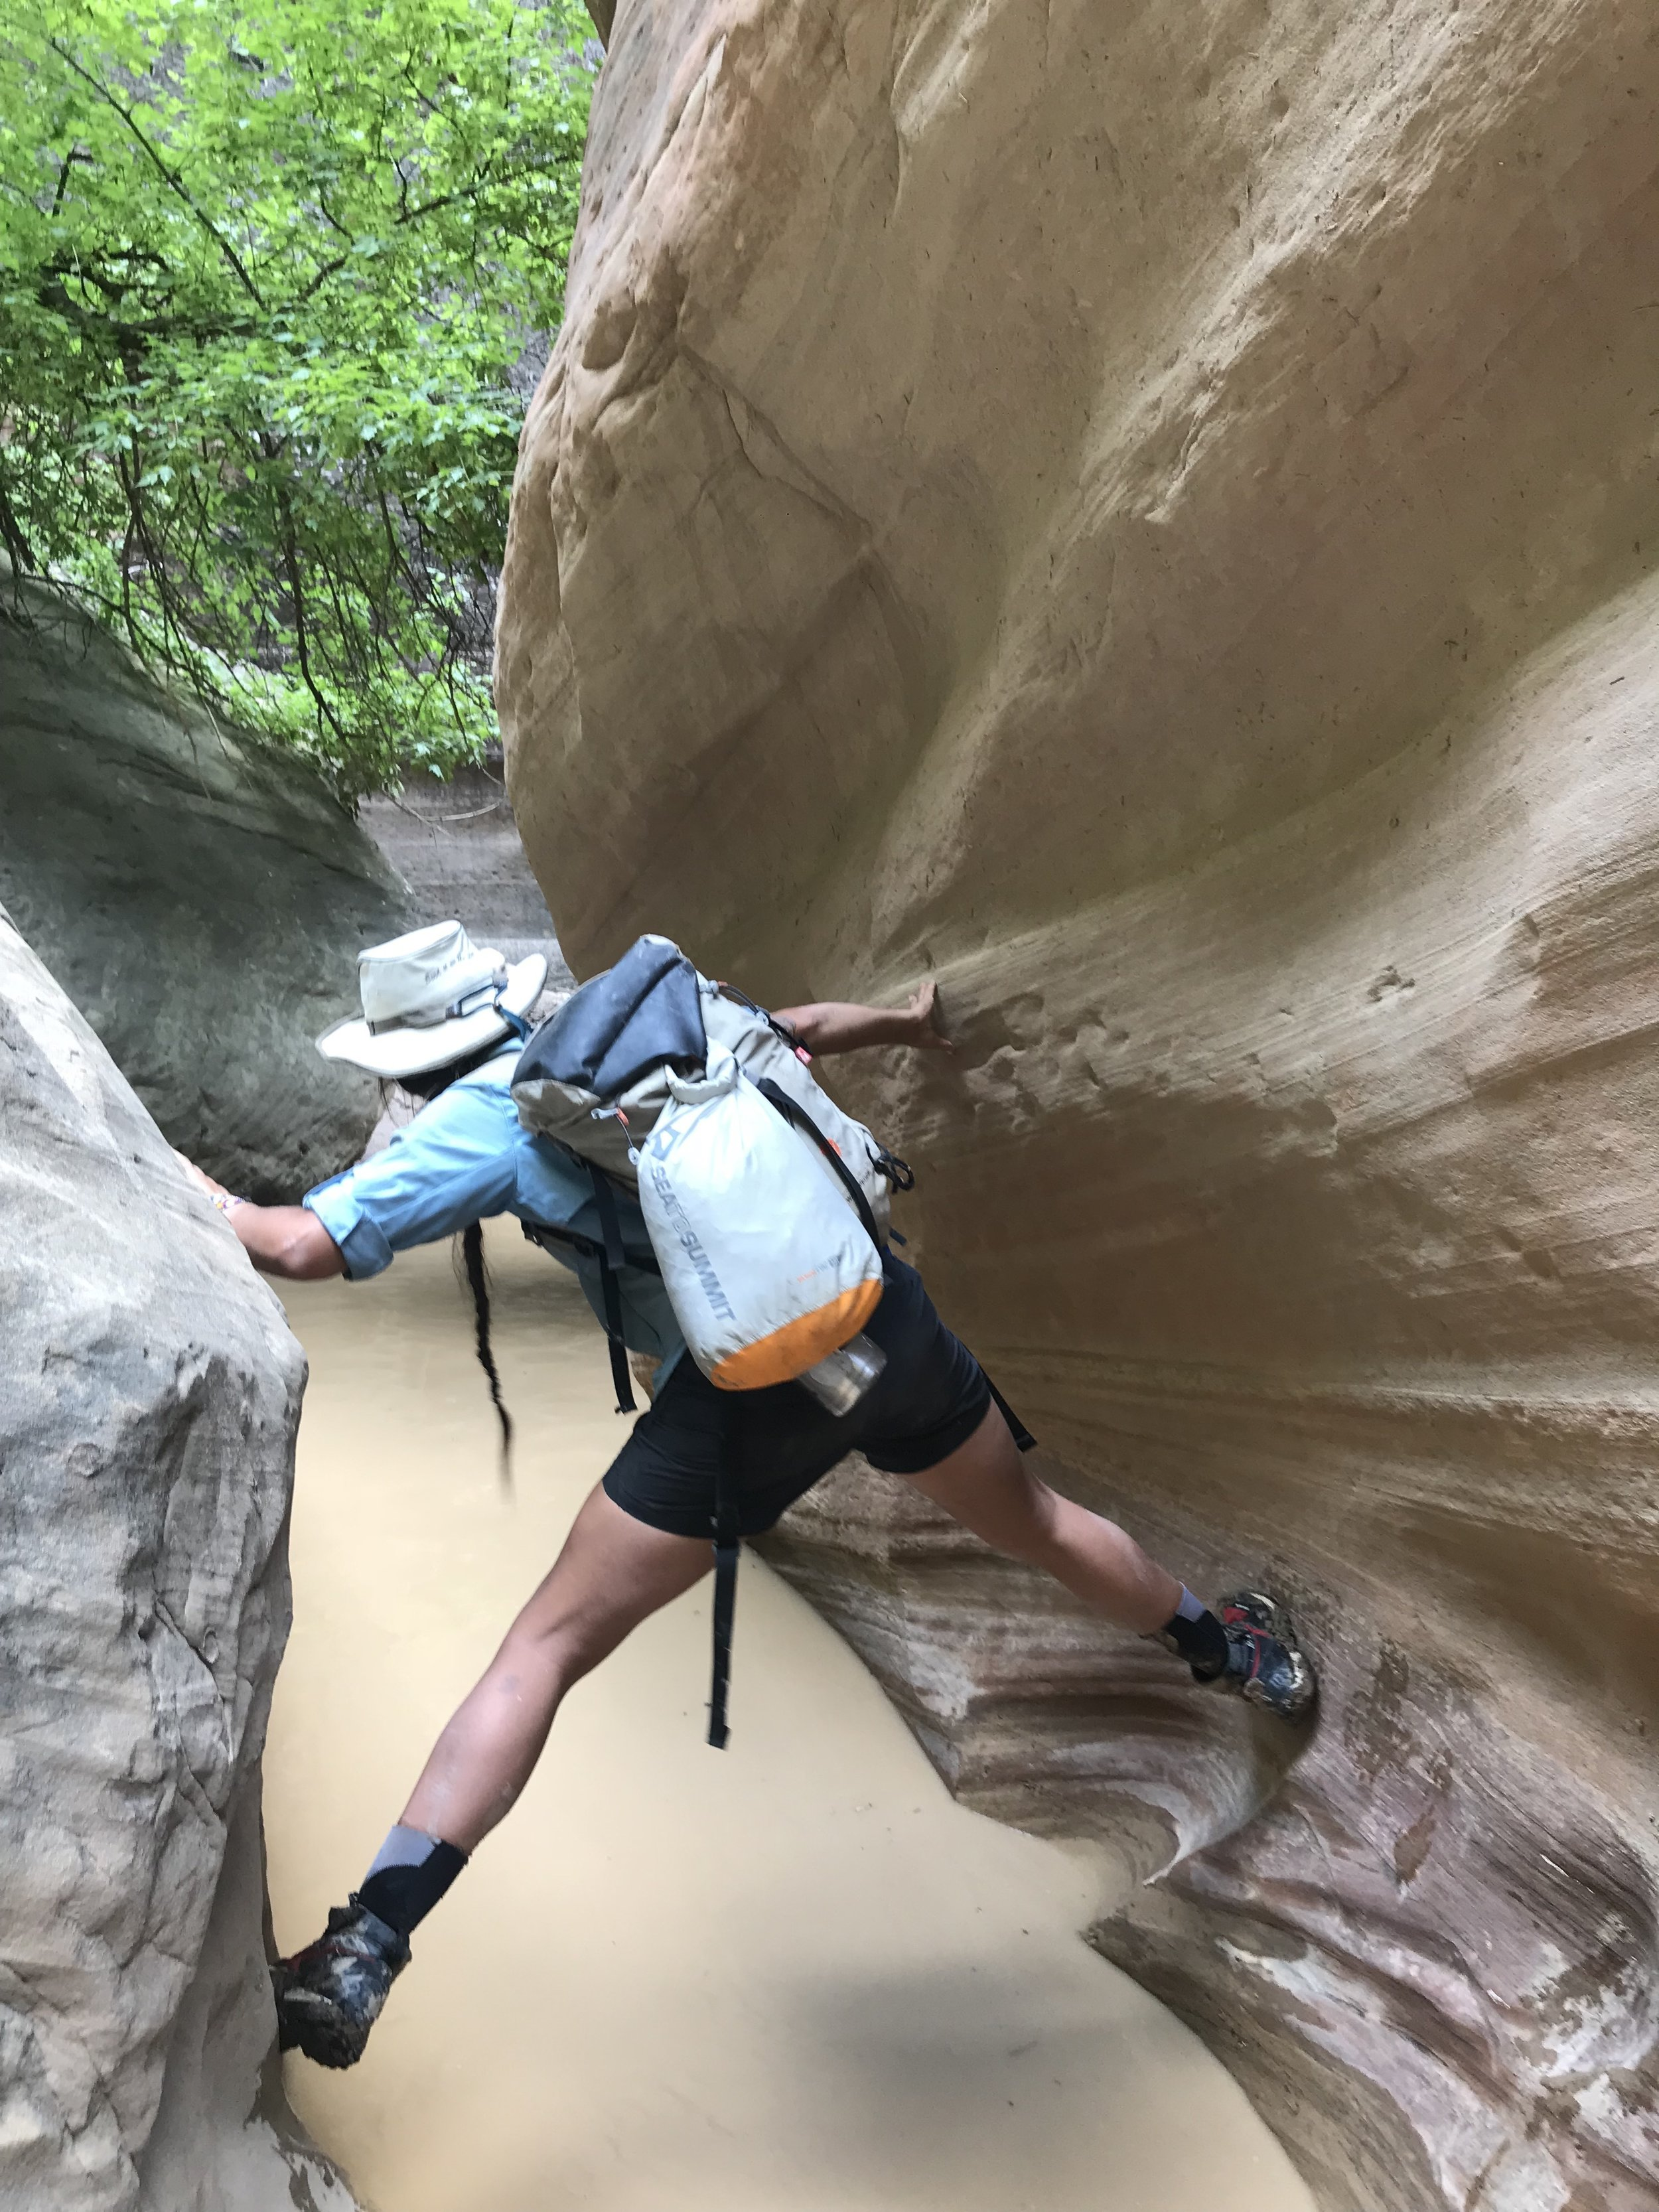 Celie climbing her way over a pool in Orderville Canyon.